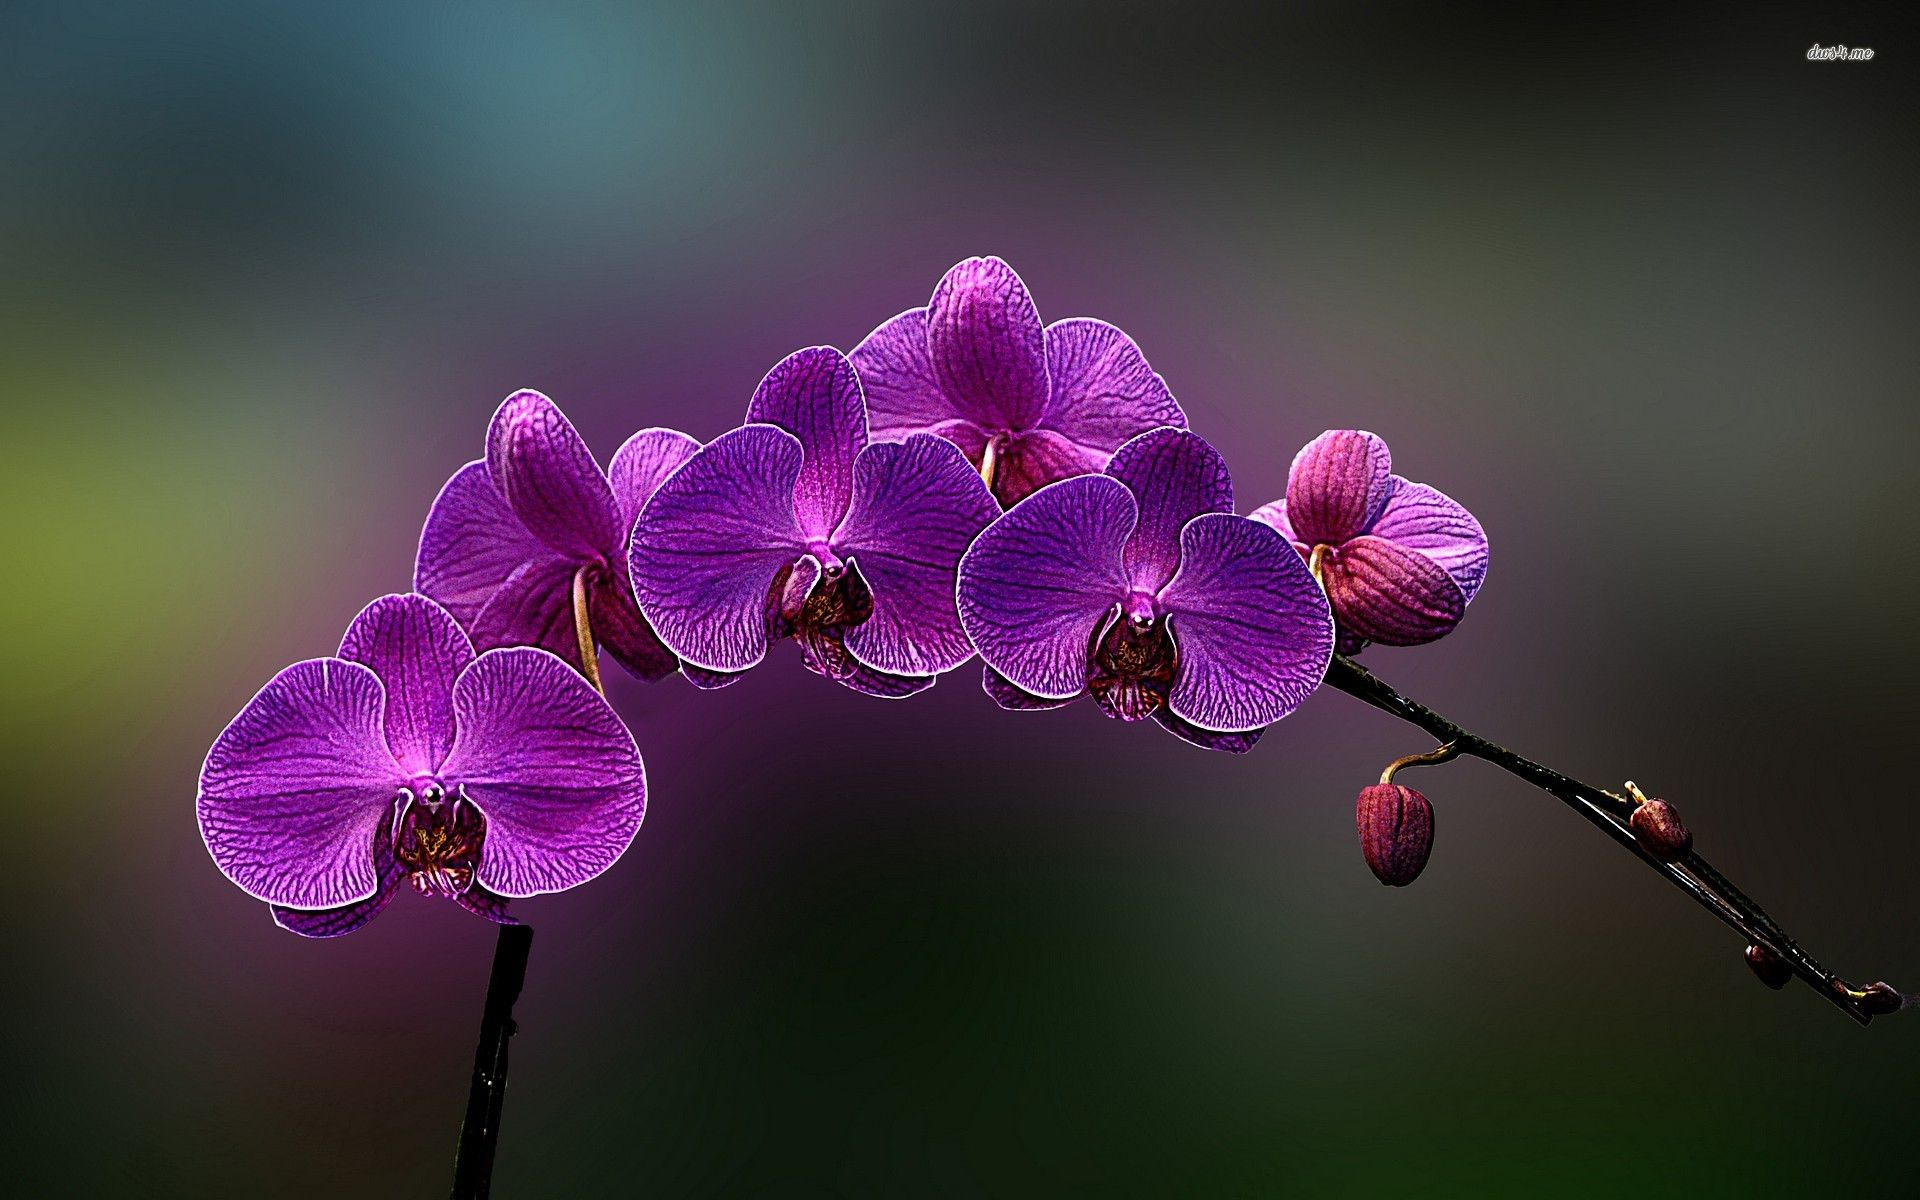 Purple Orchids Hd Wallpaper Orchid Wallpaper Orchid Drawing Purple Roses Wallpaper